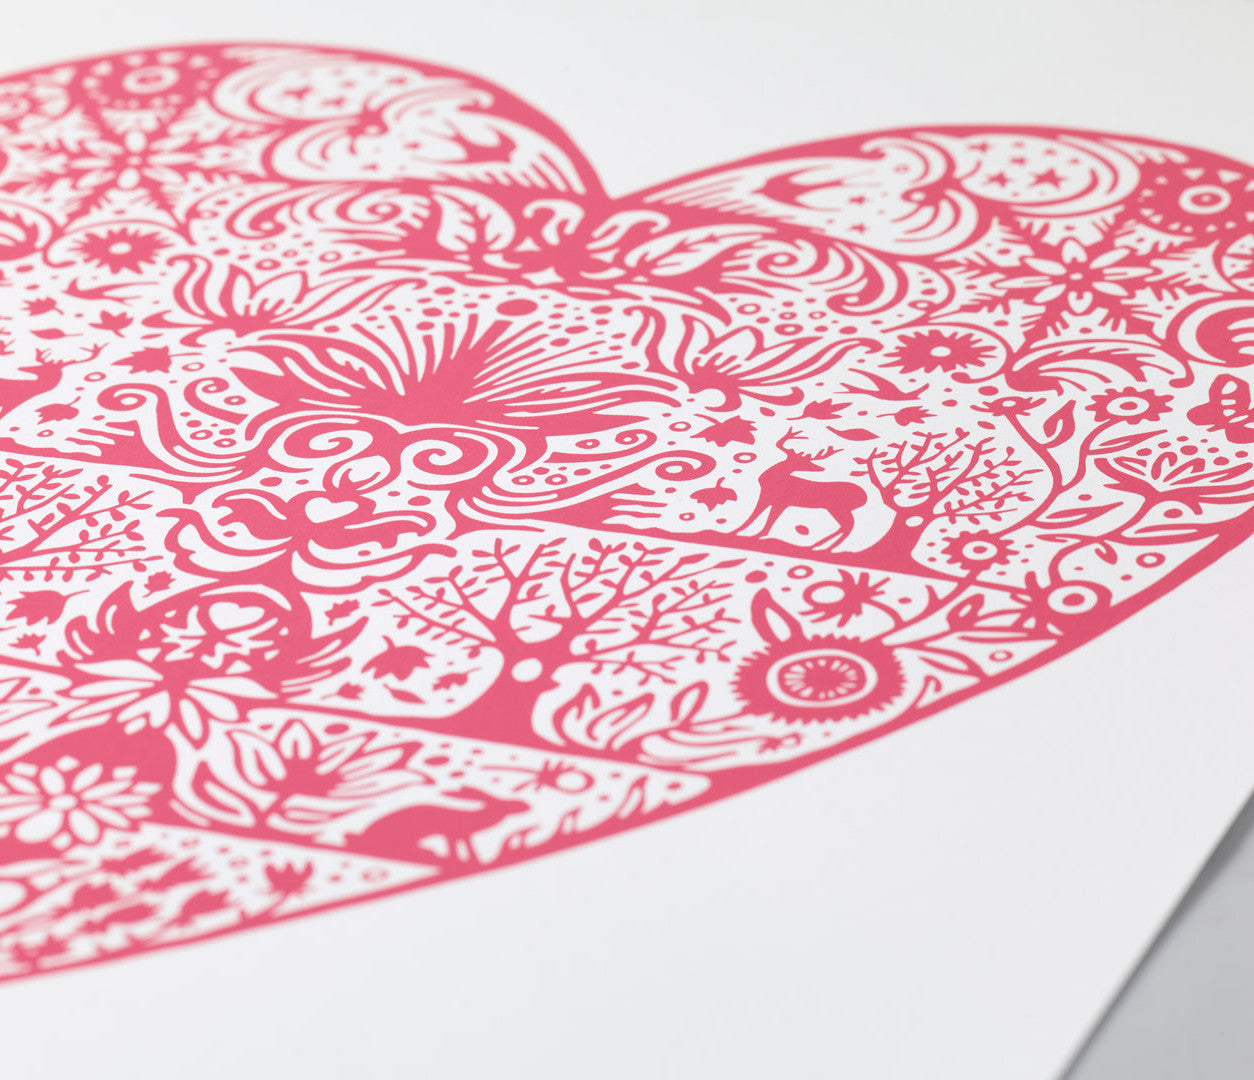 'My Heart' Love Print in Raspberry Sorbet